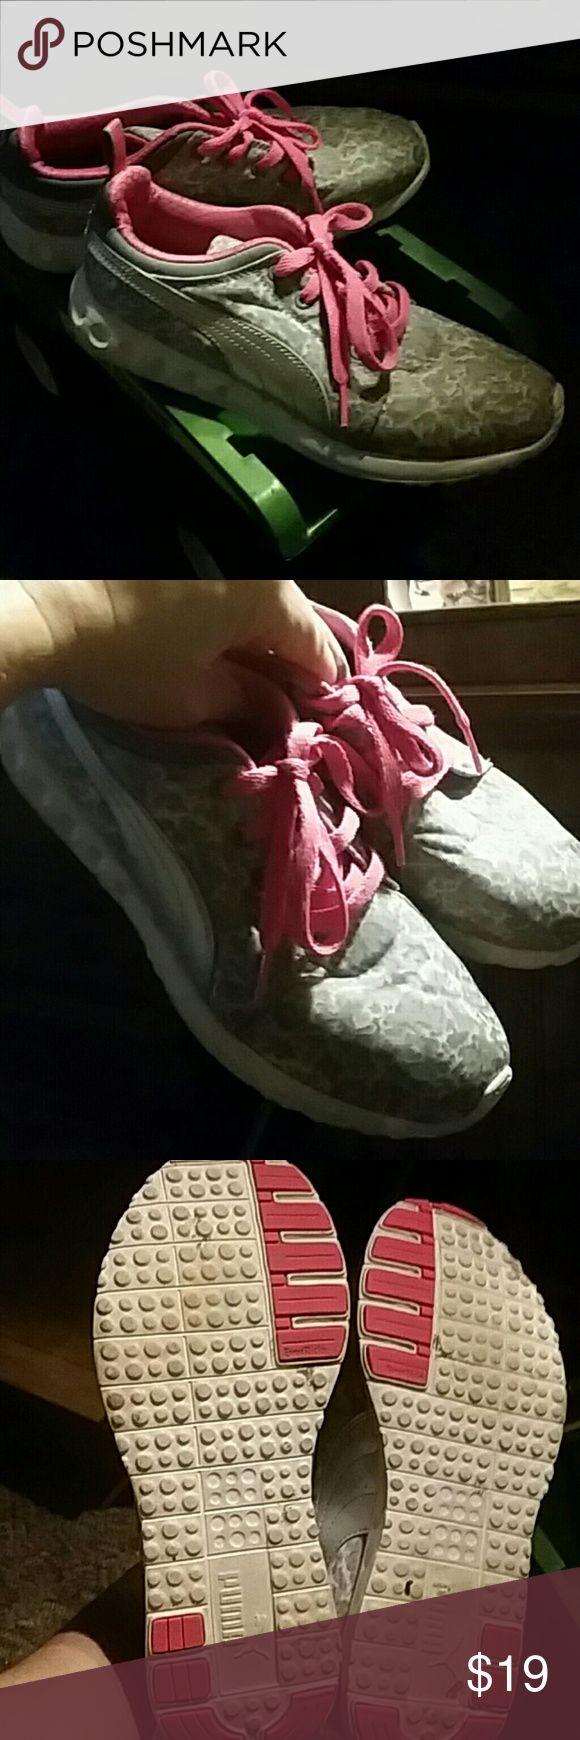 Puma tennis shoes Gray white leopard print with pink laces really cute Puma Shoes Sneakers